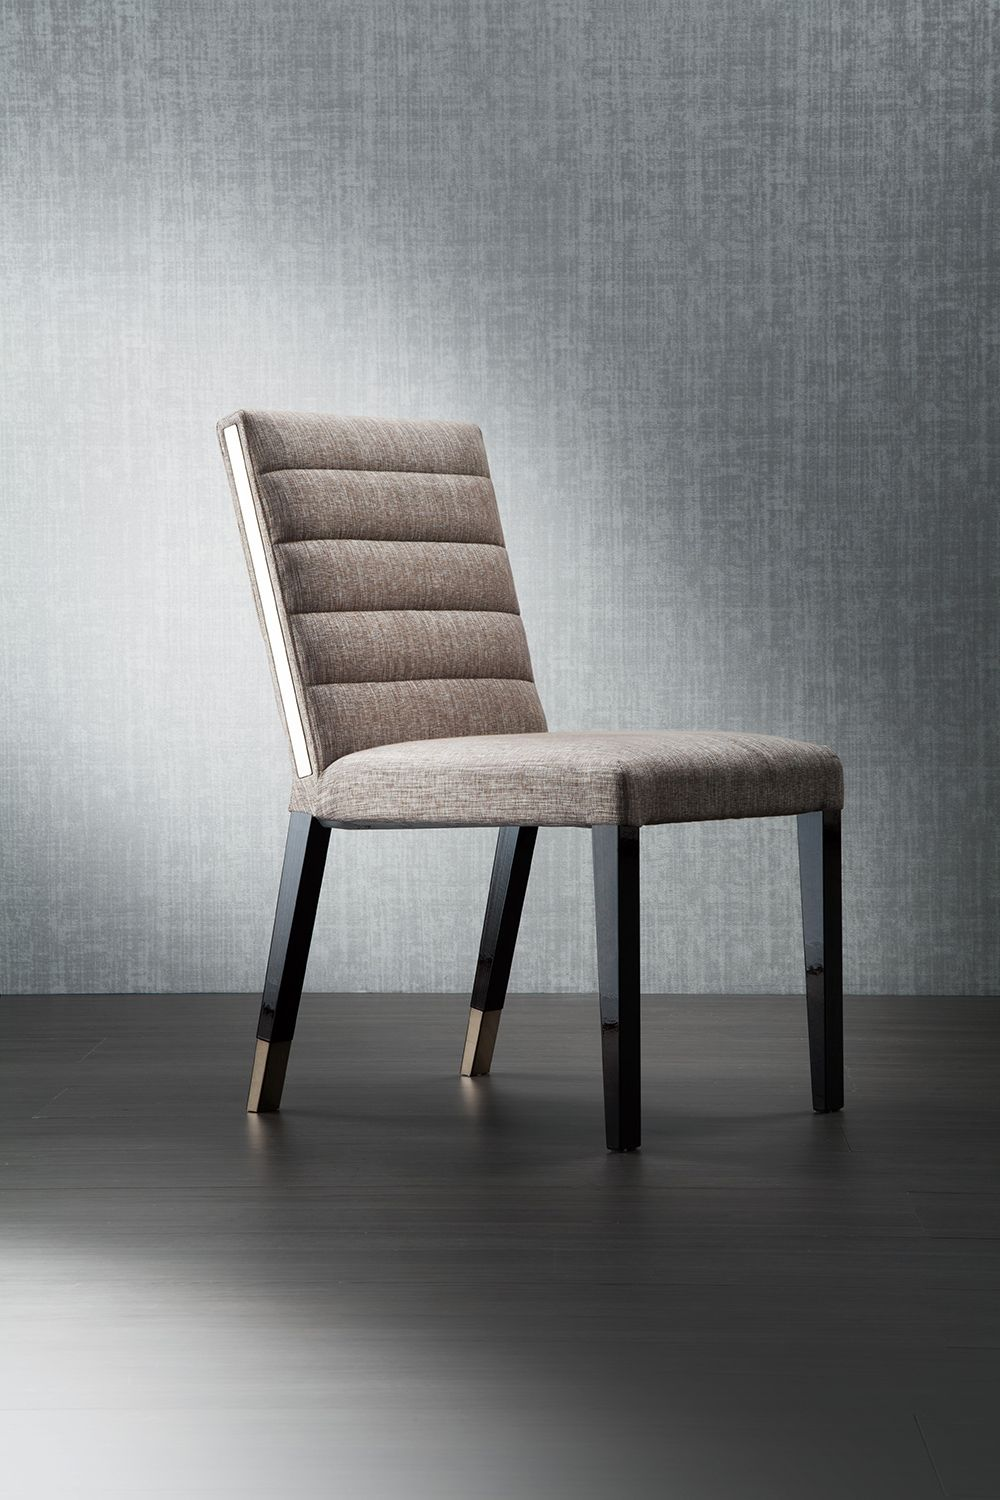 Aston Chair Luxury Italian Upholstered Chair - Italian Designer ...